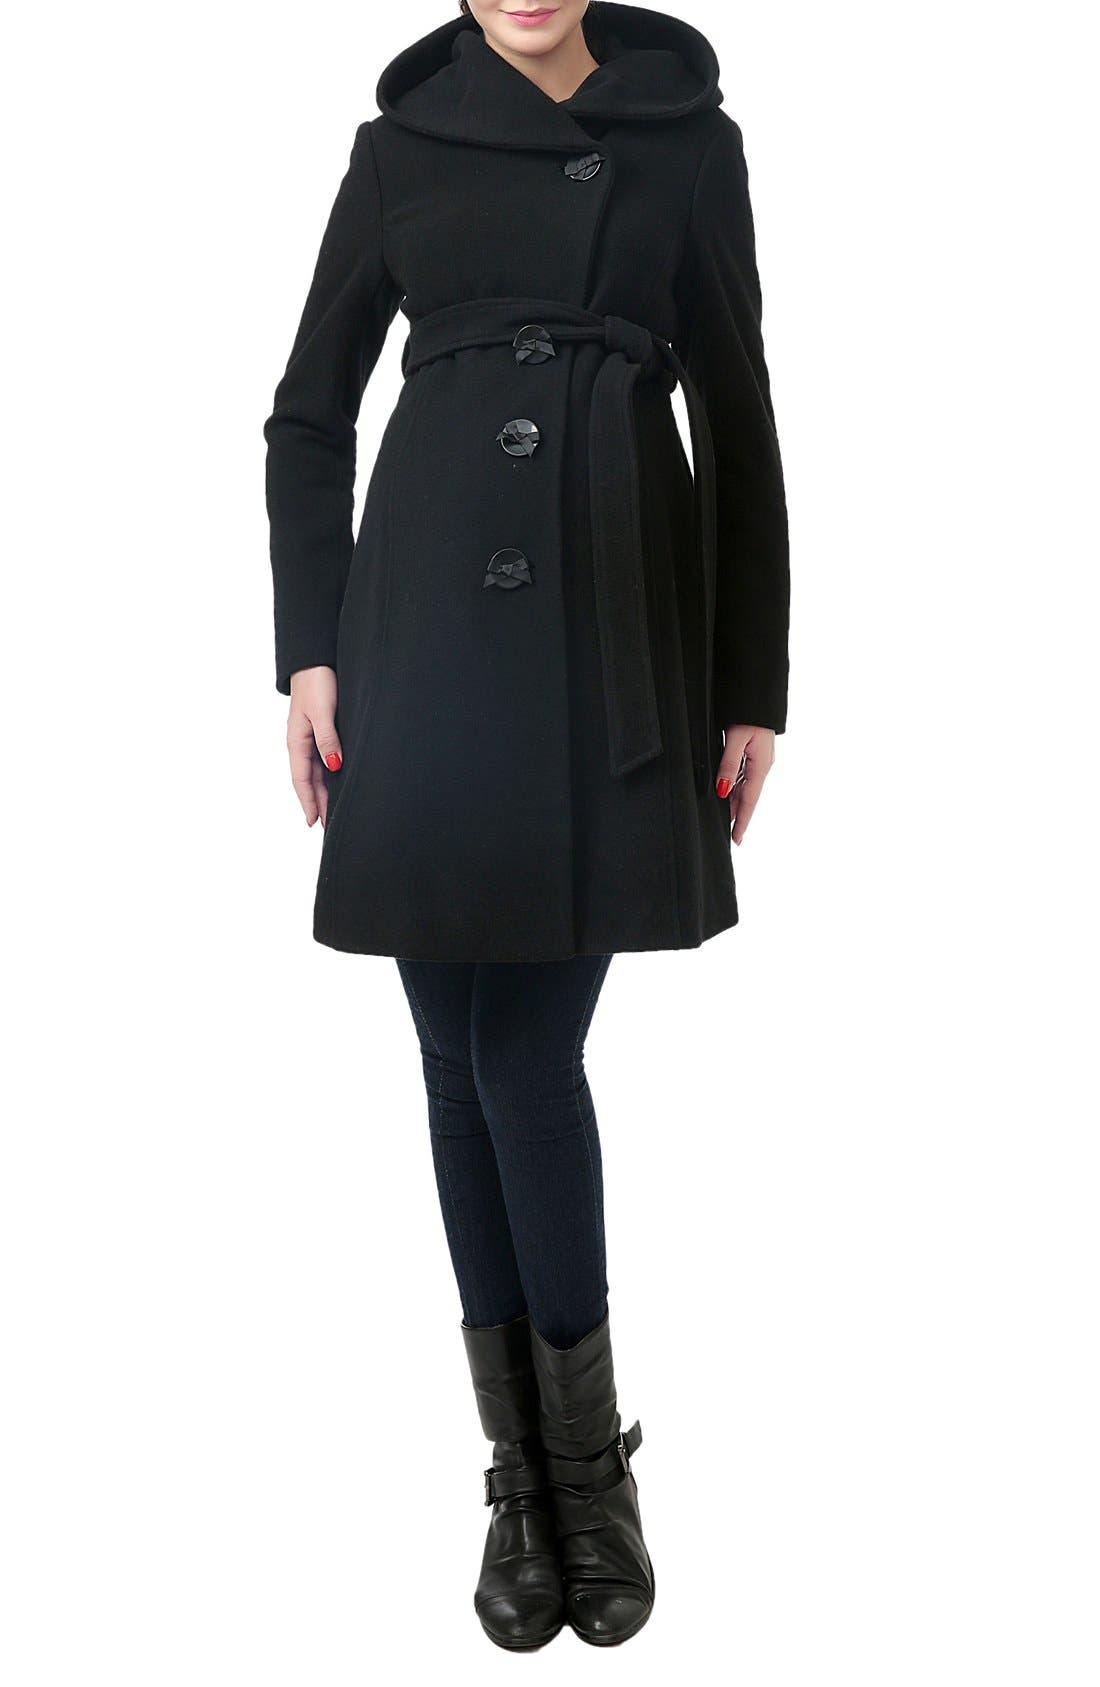 KIMI AND KAI 'Lora' Wool Blend Maternity Coat, Main, color, BLACK